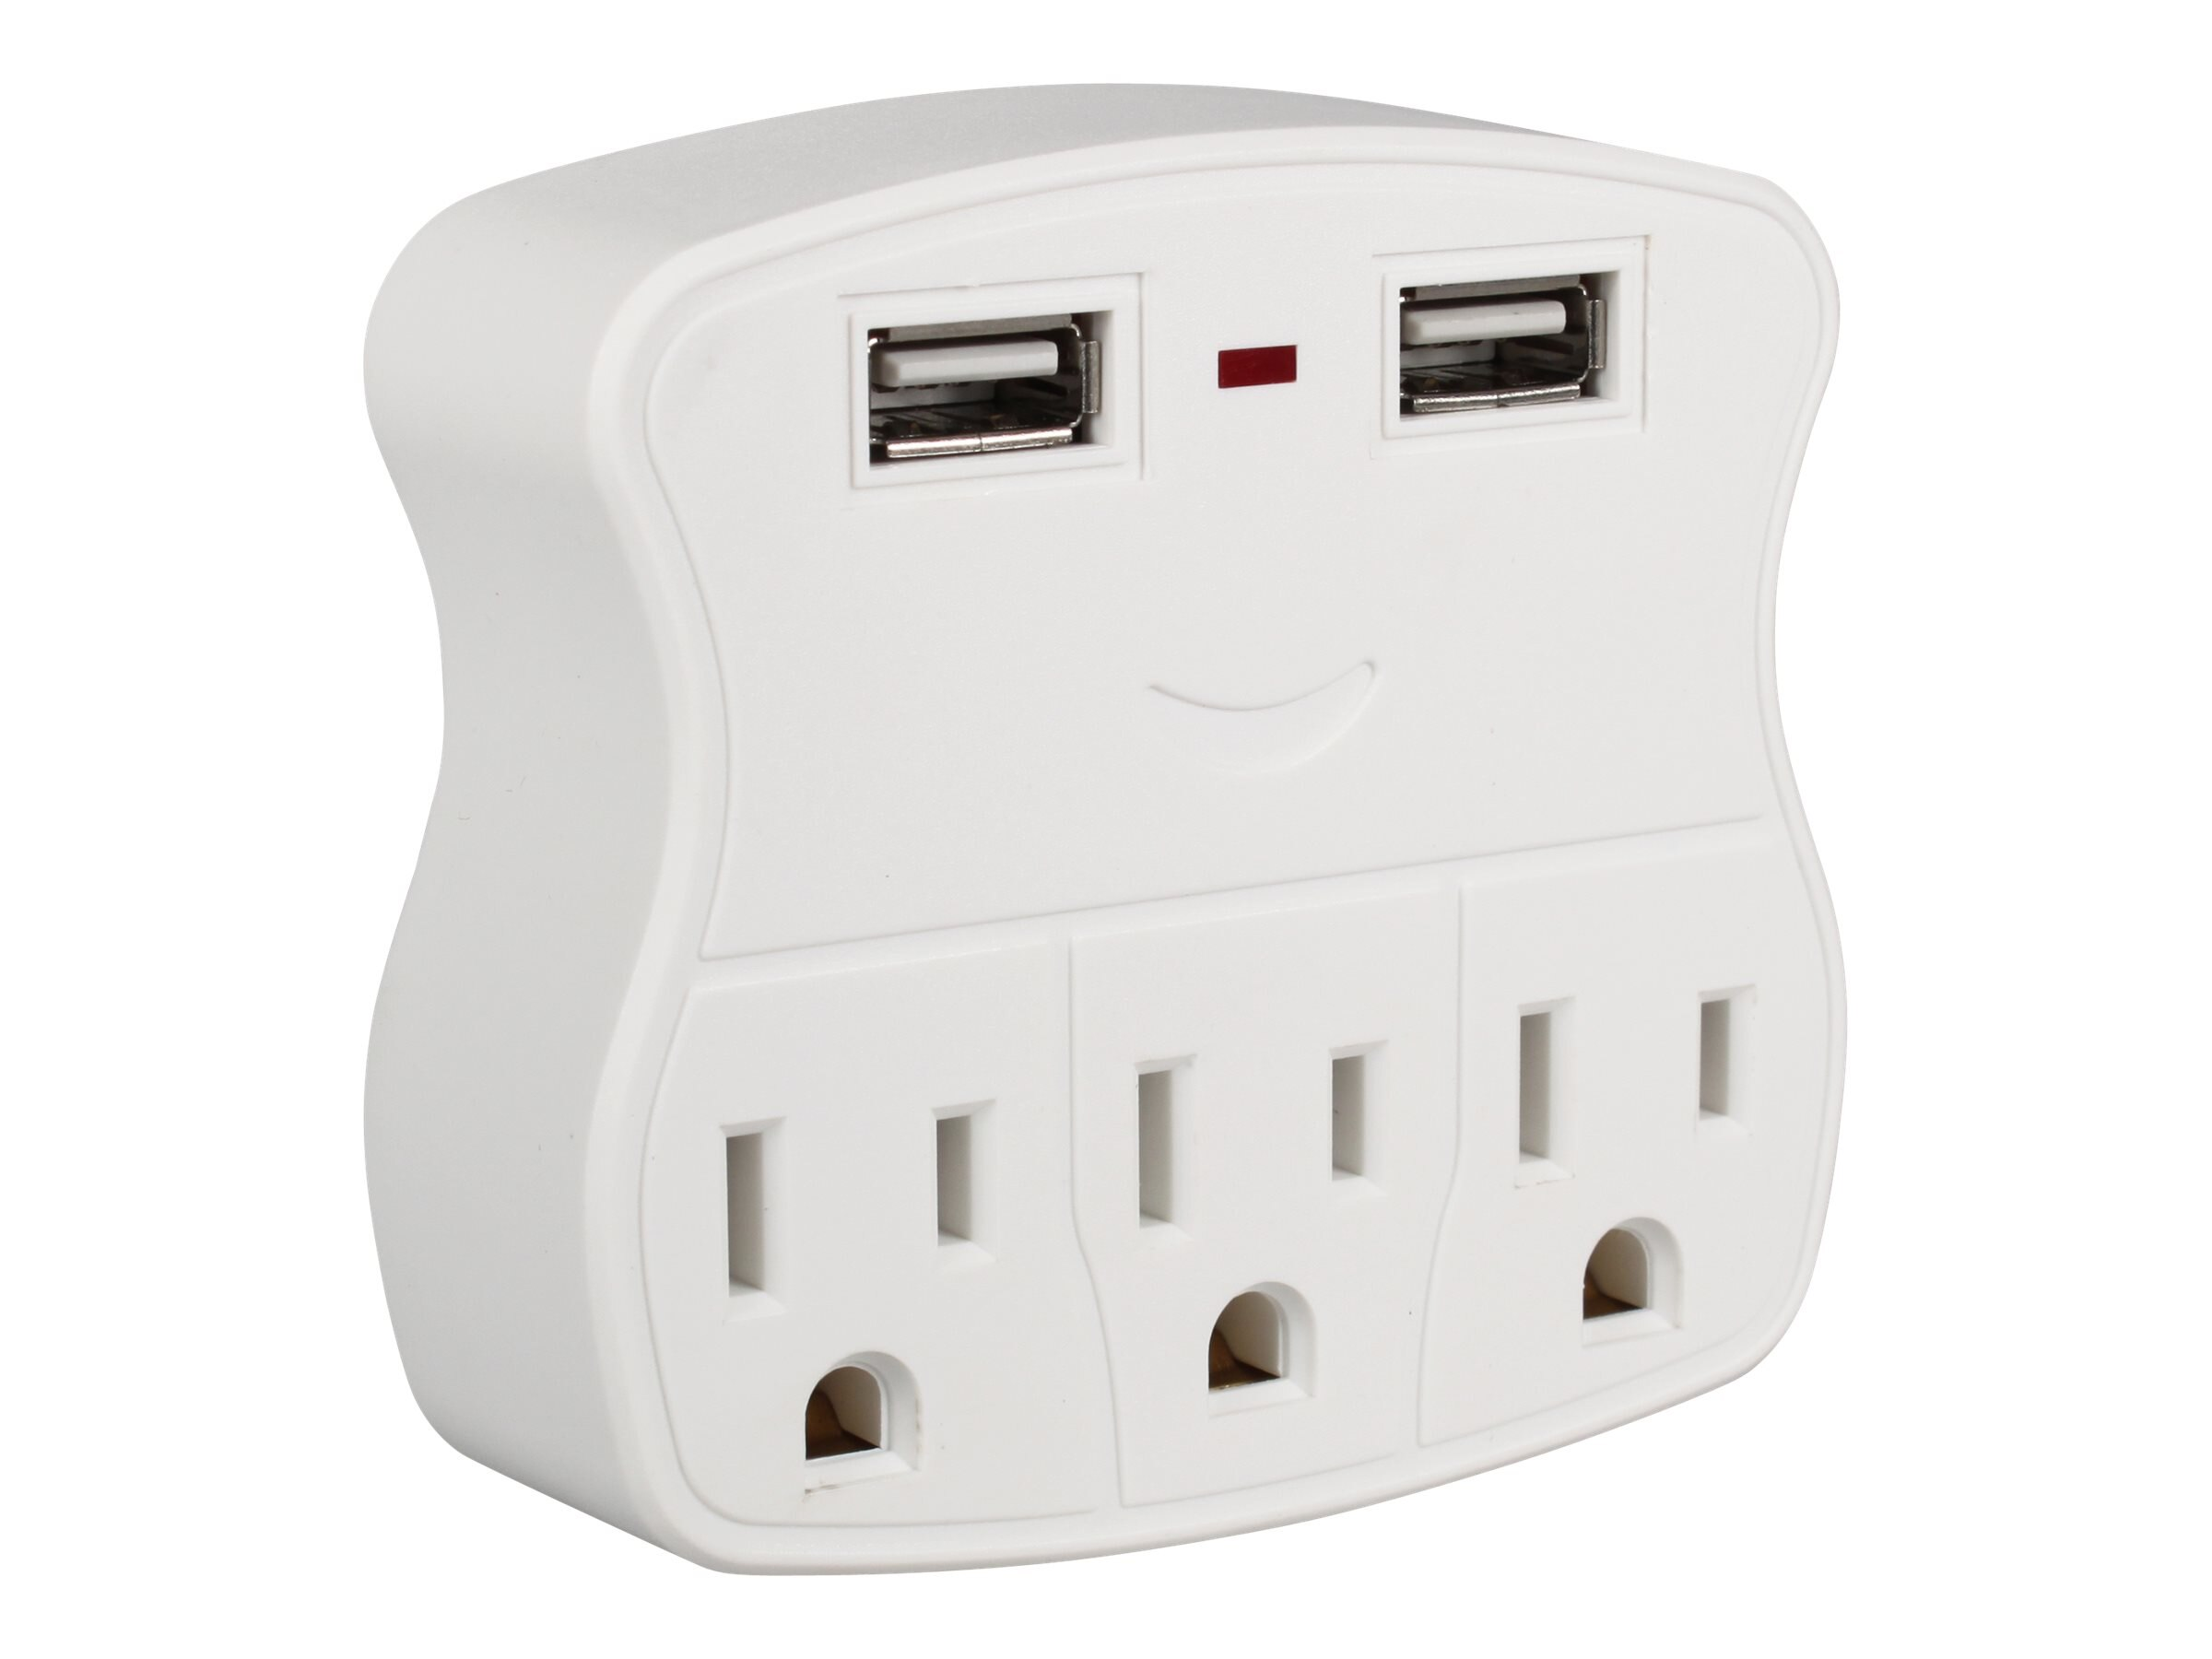 QVS 5-Outlet Wallmount Power Strip w  Dual USB 2.1A Charging Ports, PS-05UW, 31202107, Power Strips